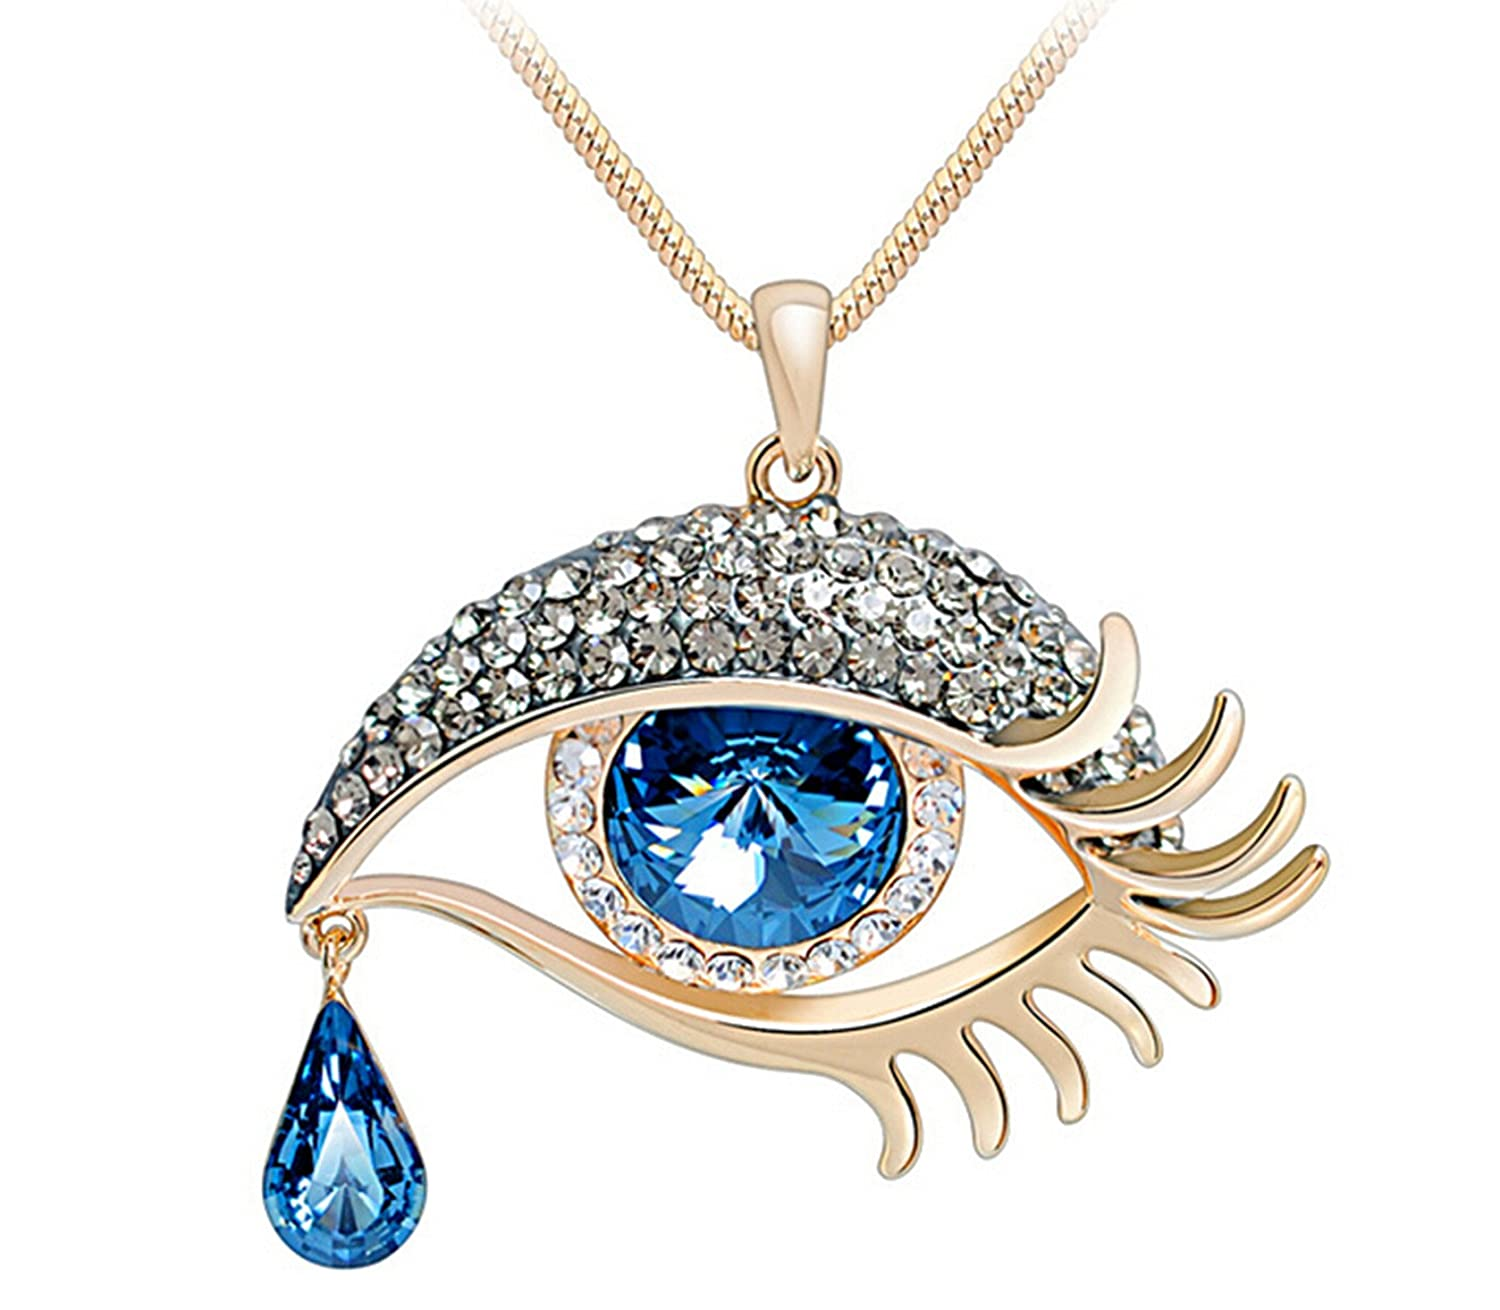 eye product evil fullsizerender necklace layer